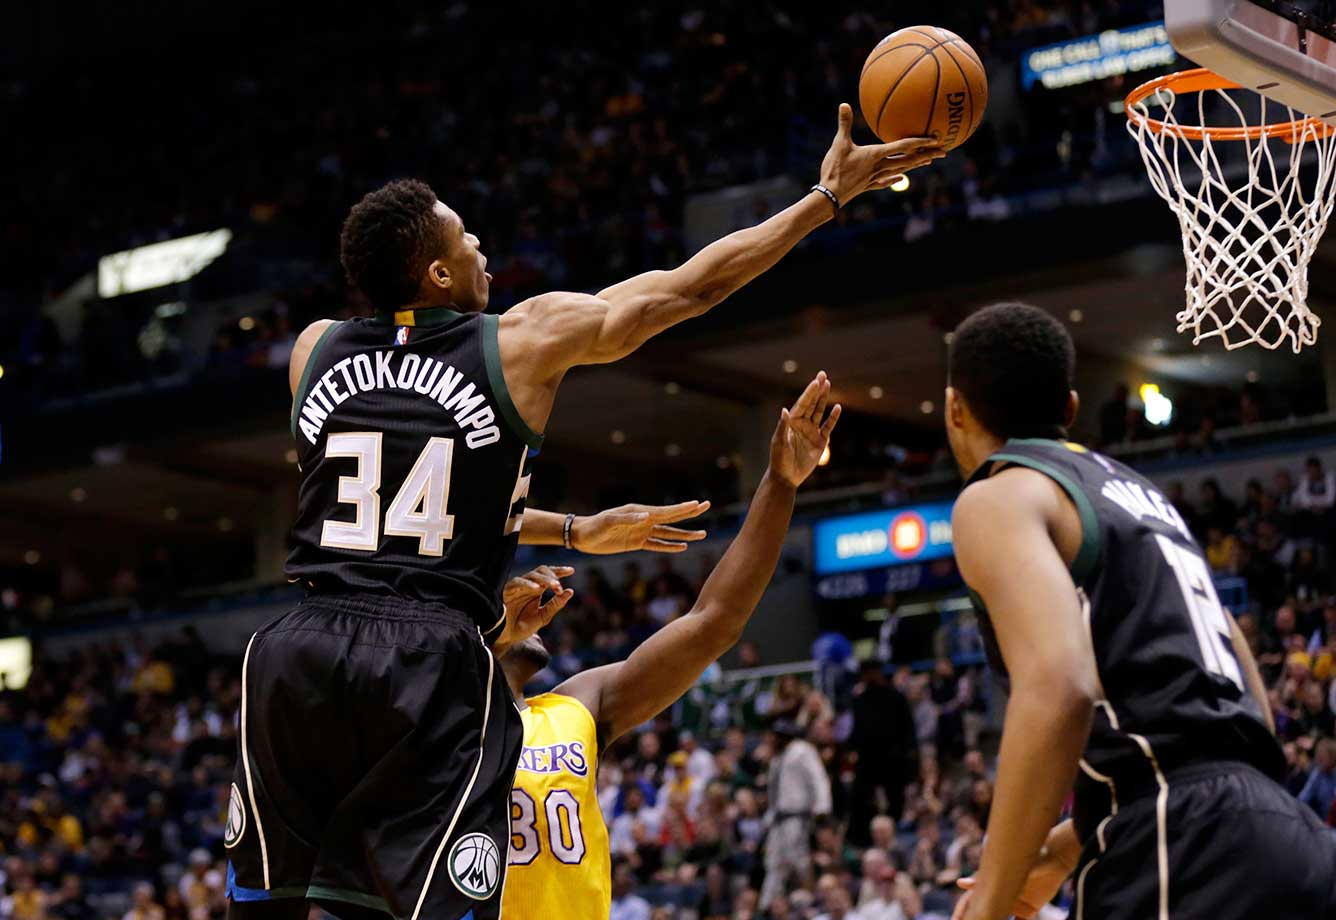 Giannis Antetokounmpo of the Milwaukee Bucks drives to the hoop for two points against the Los Angeles Lakers.